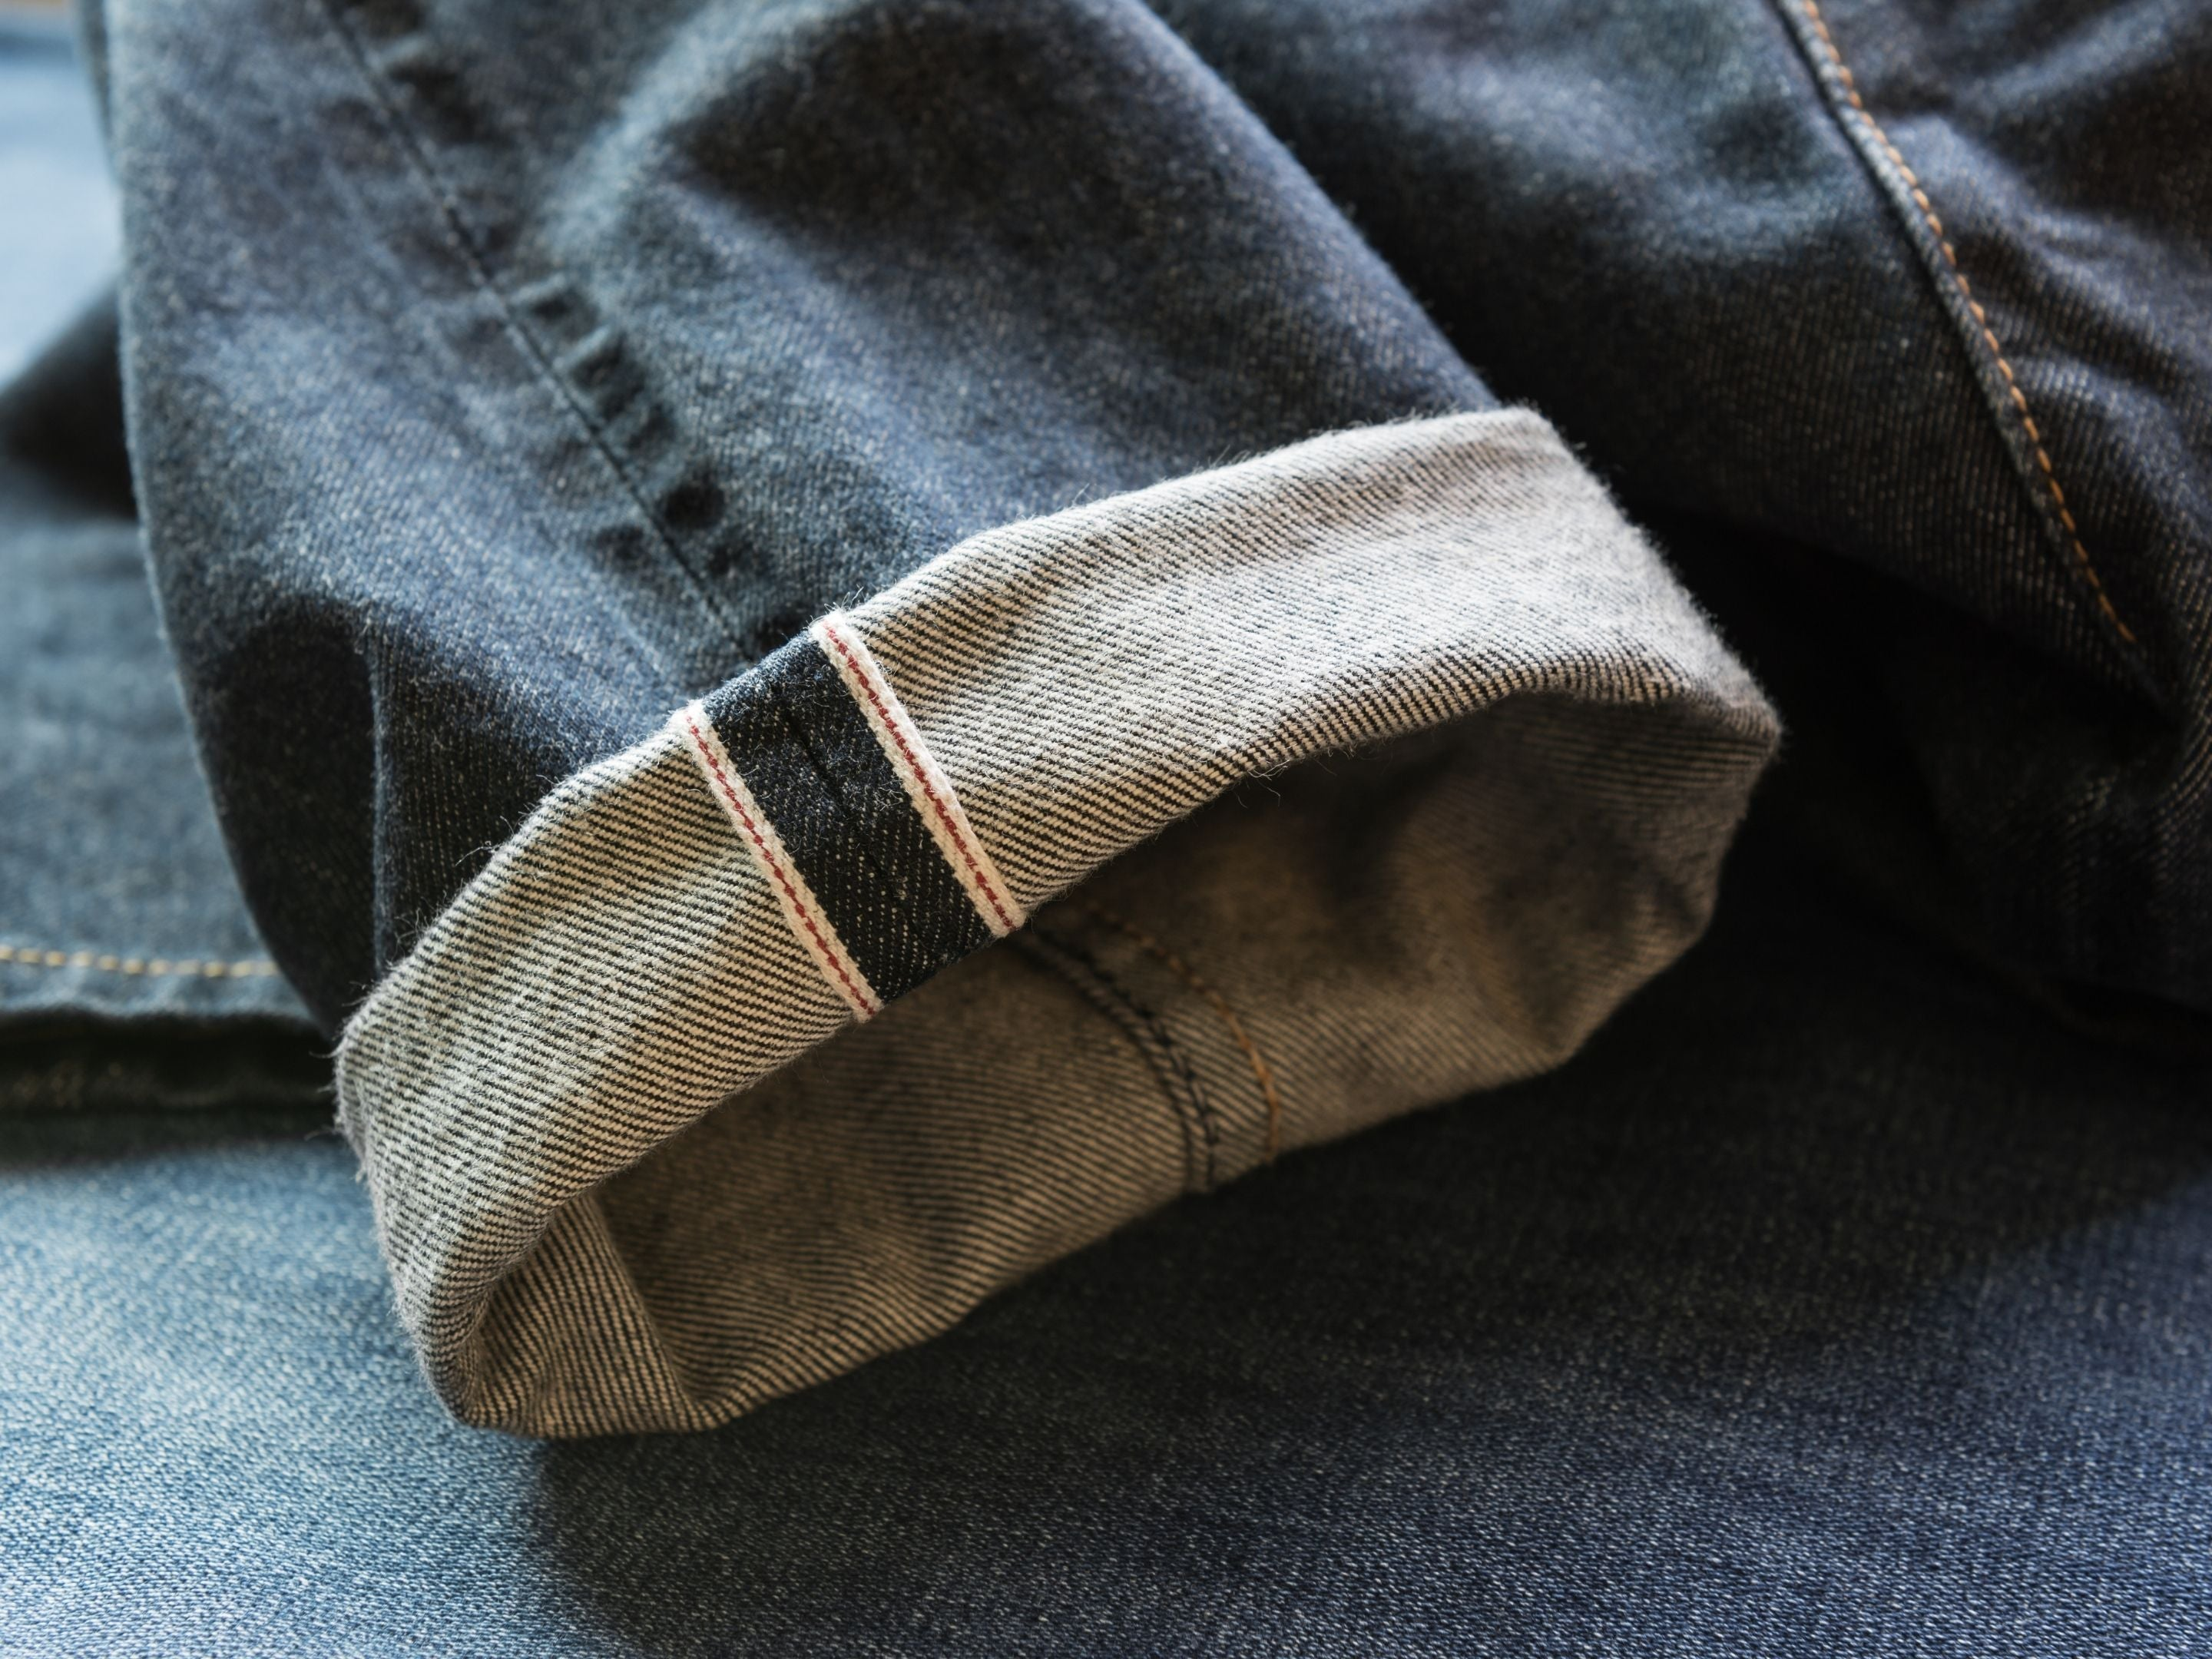 Selvage Denim Jeans with Rolled Cuff Details